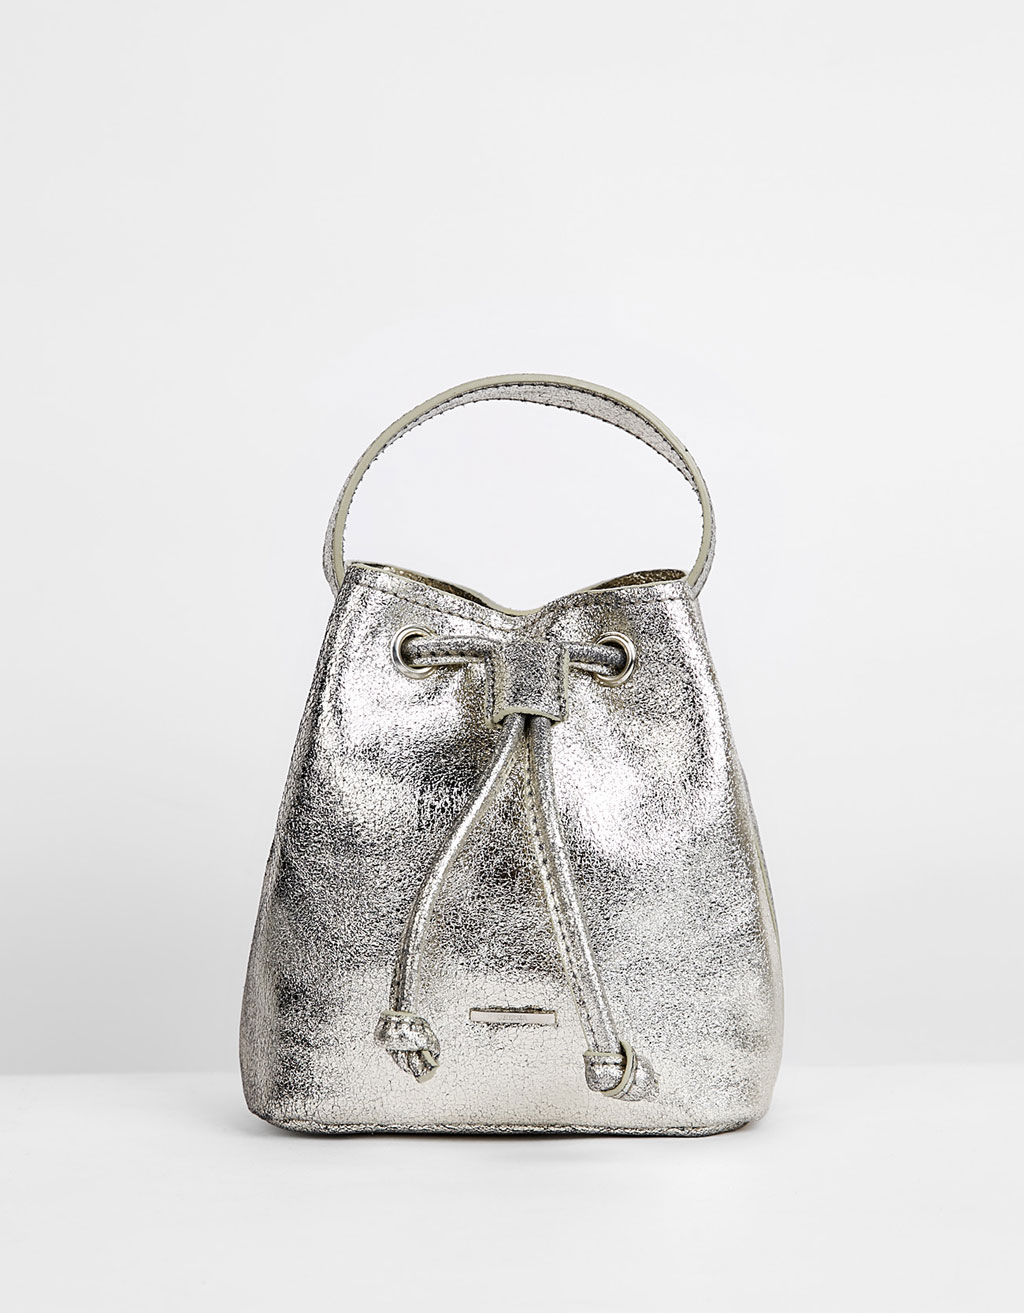 Mini metallic leather bag